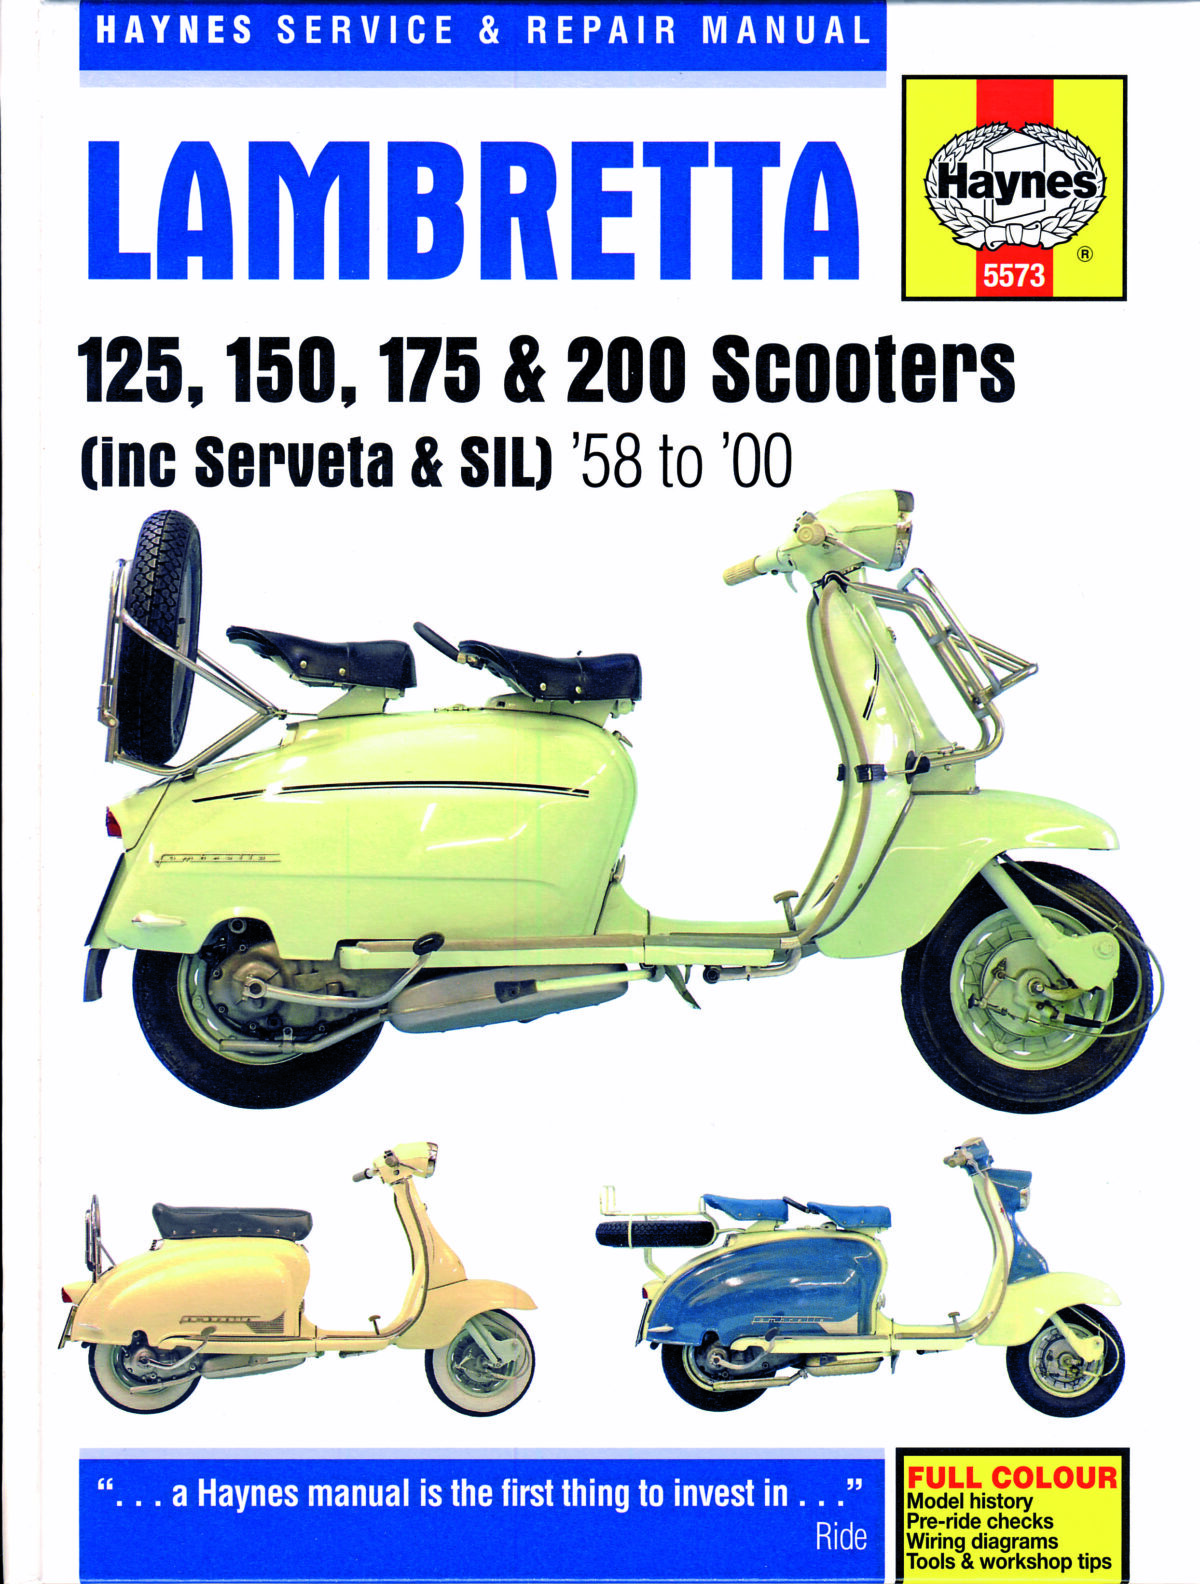 Haynes Service And Repair Manual For Lambretta Scooters Scootering Wiring Diagrams 009 Cover